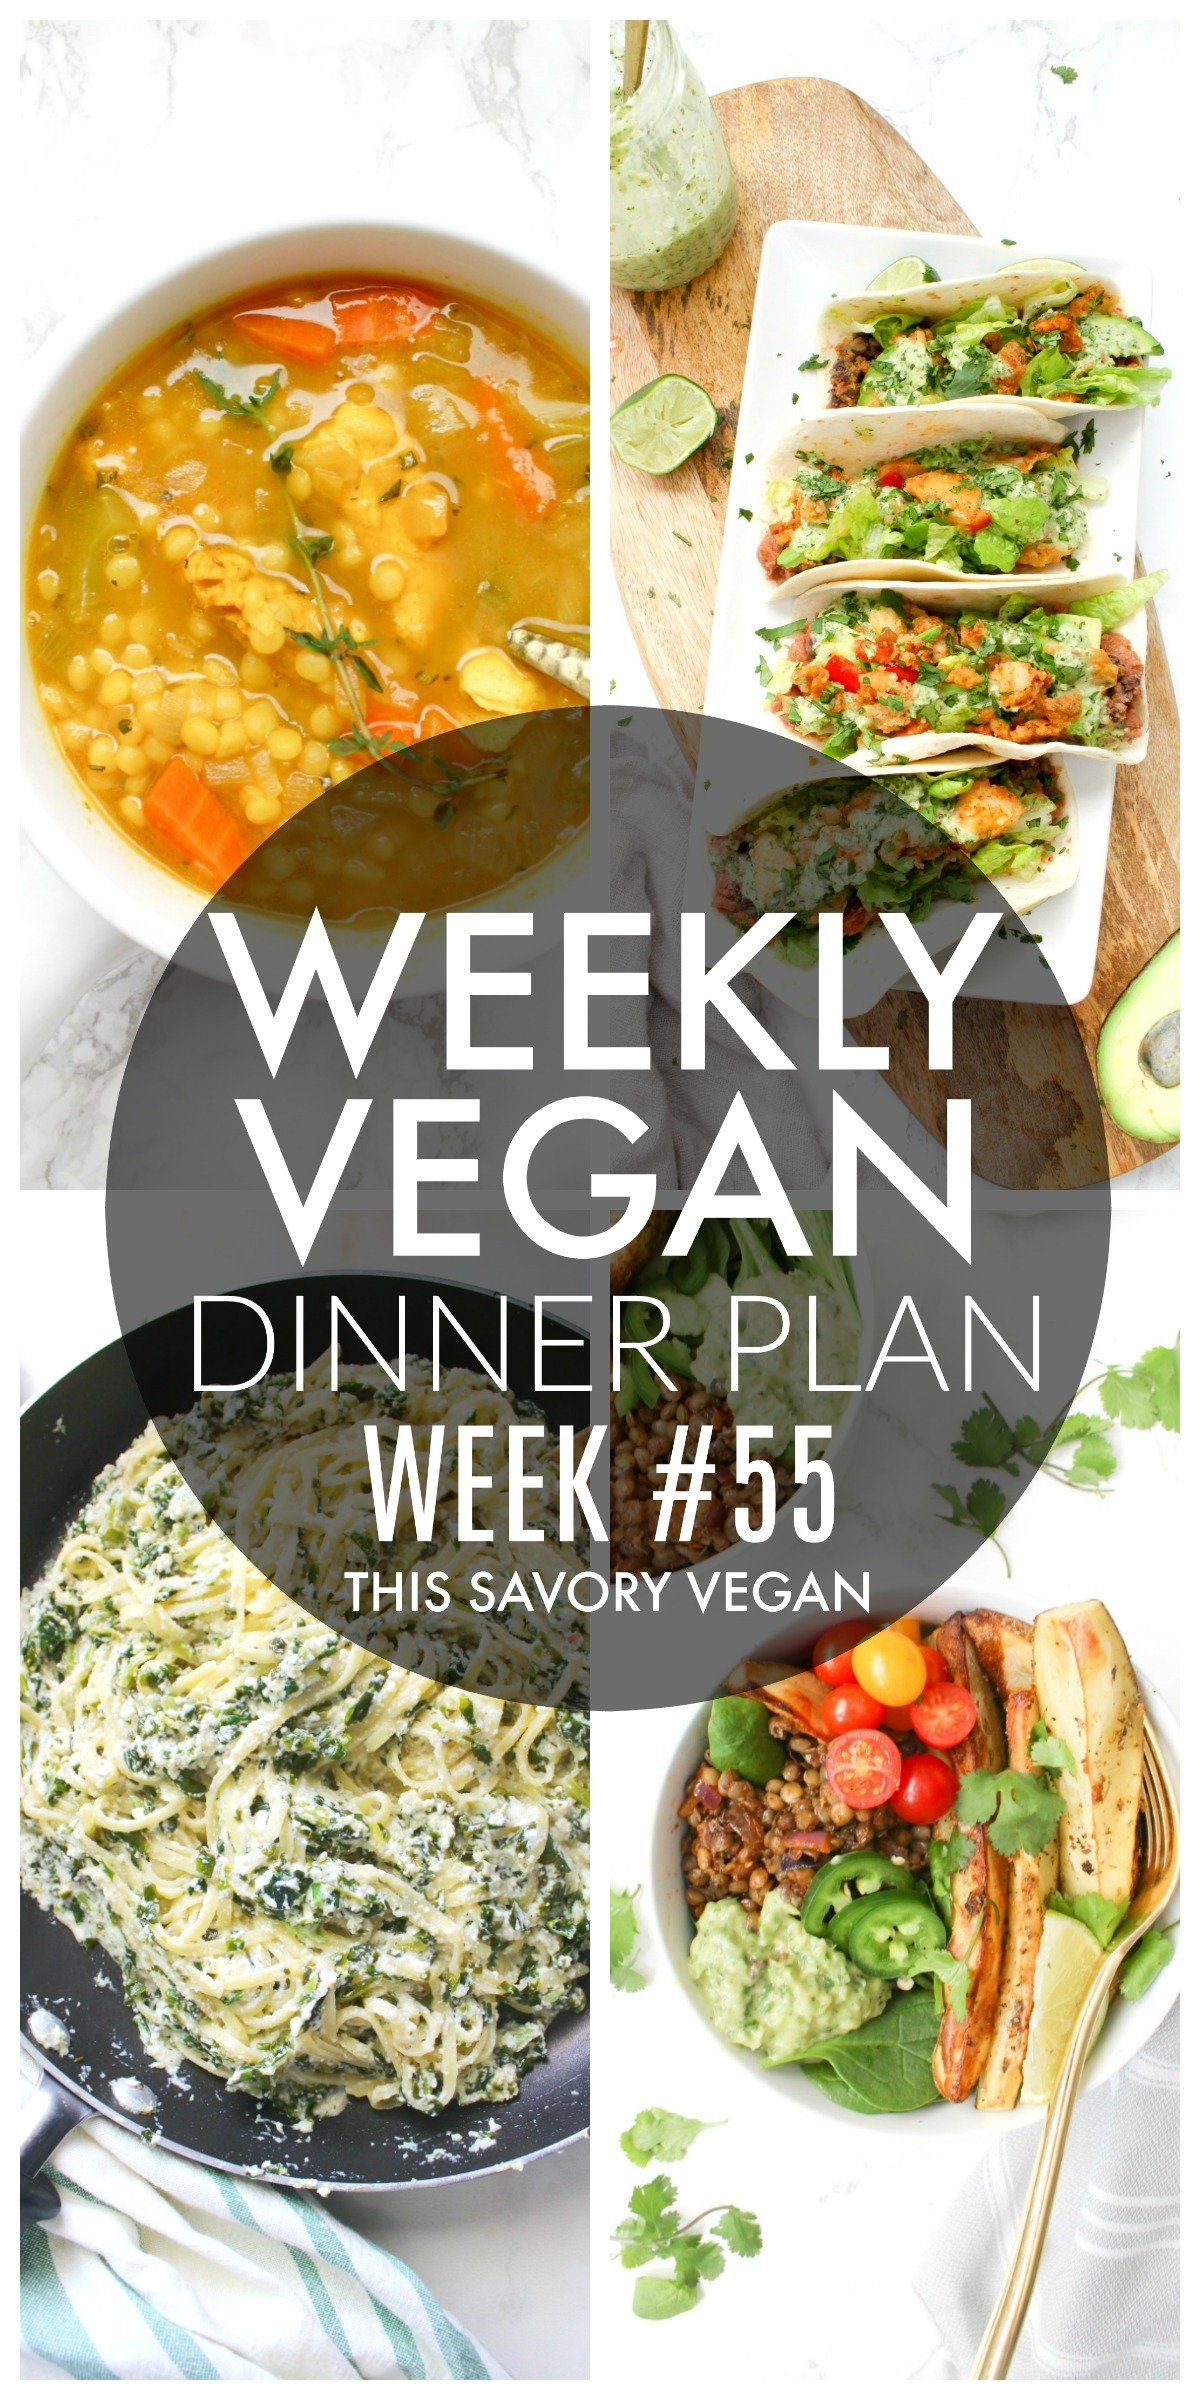 Weekly Vegan Dinner Plan #55 - five nights worth of vegan dinners to help inspire your menu. Choose one recipe to add to your rotation or make them all - shopping list included   ThisSavoryVegan.com #thissavoryvegan #mealprep #dinnerplan